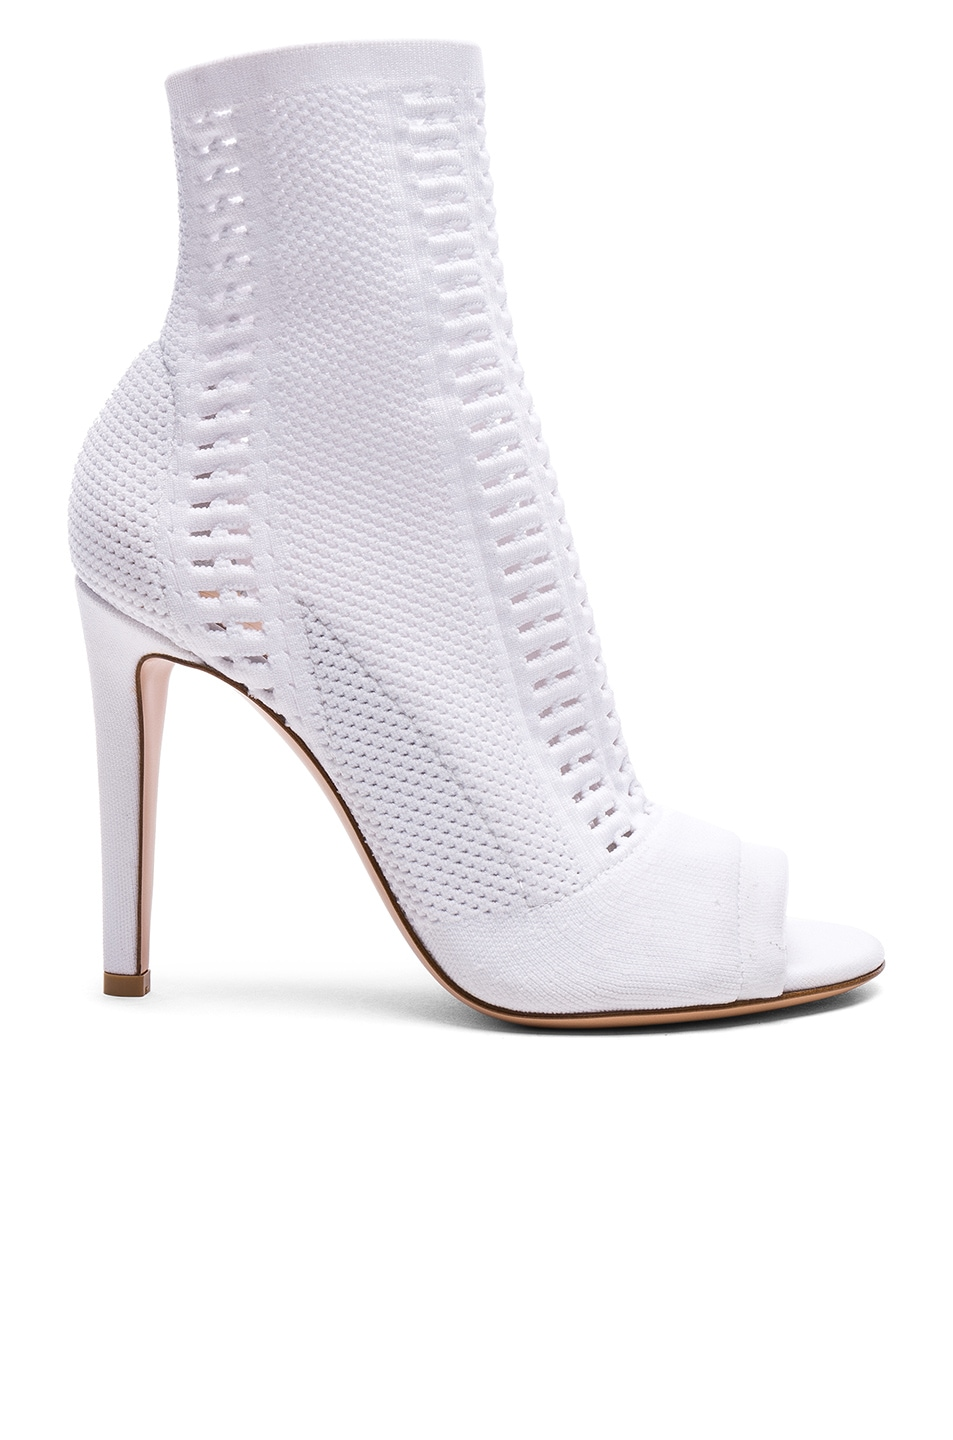 Image 1 of Gianvito Rossi Knit Vires Booties in White